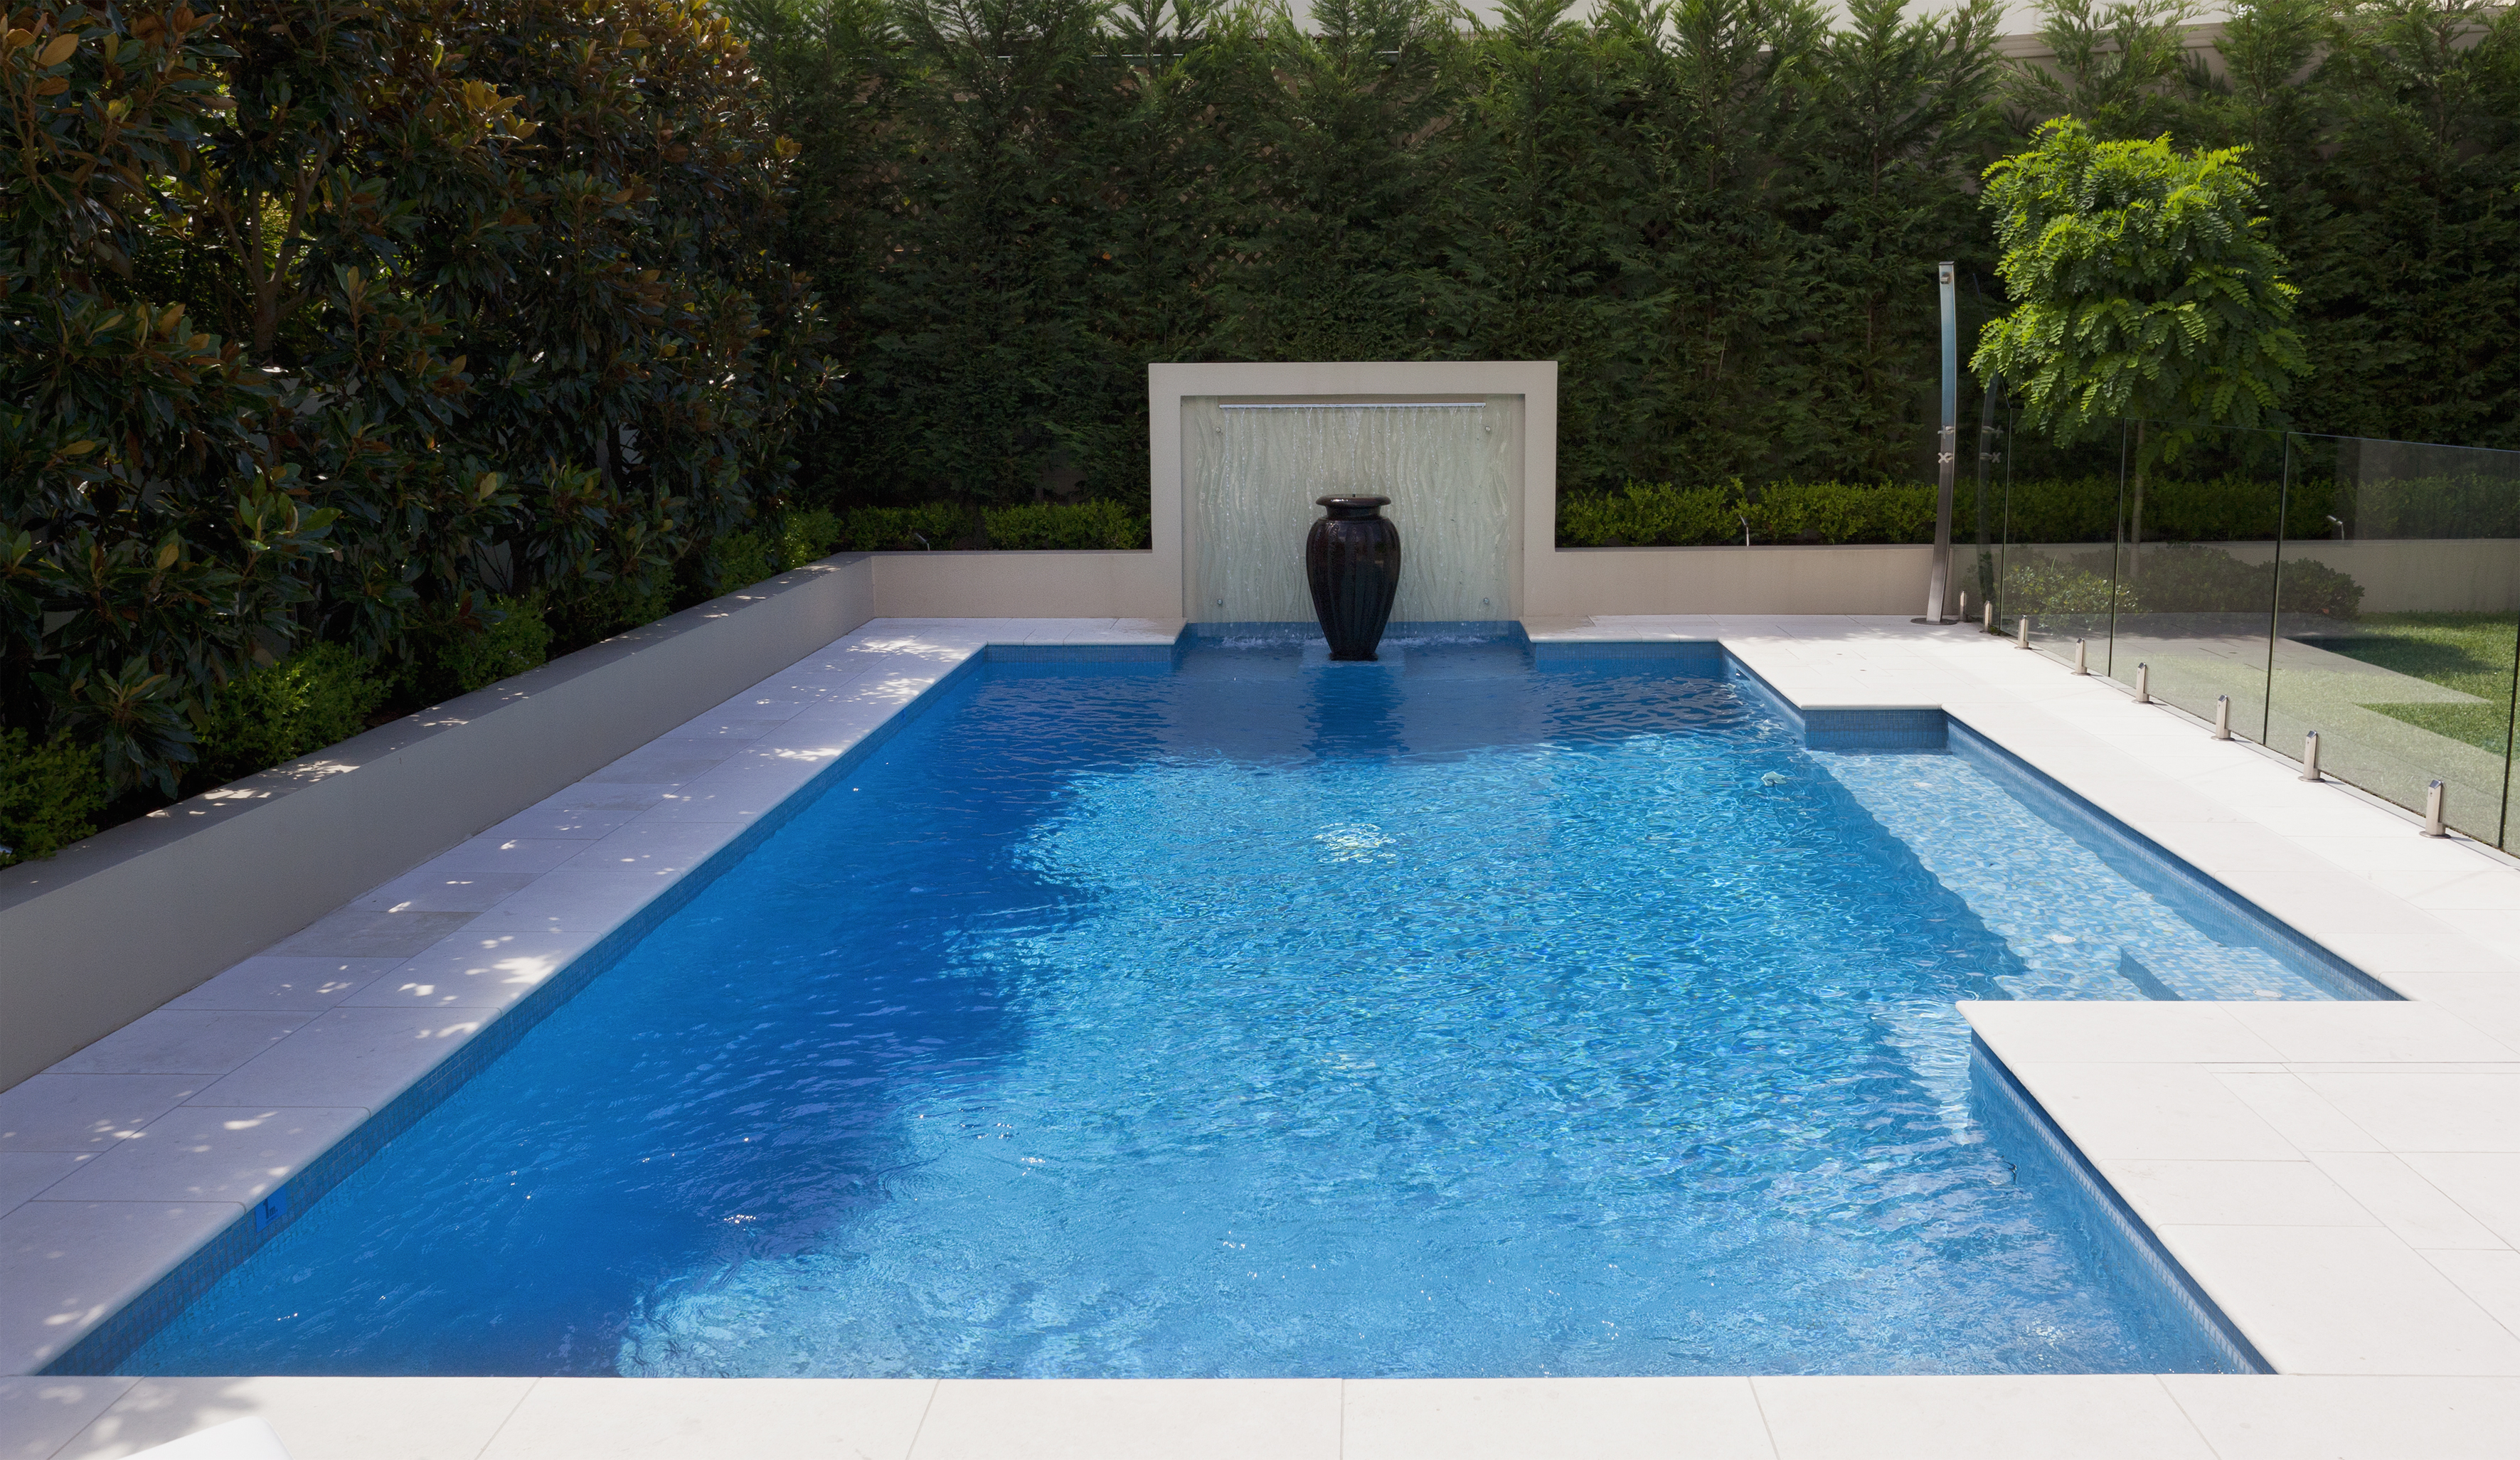 Pride pools sydney pool and outdoor design for Pool design sydney